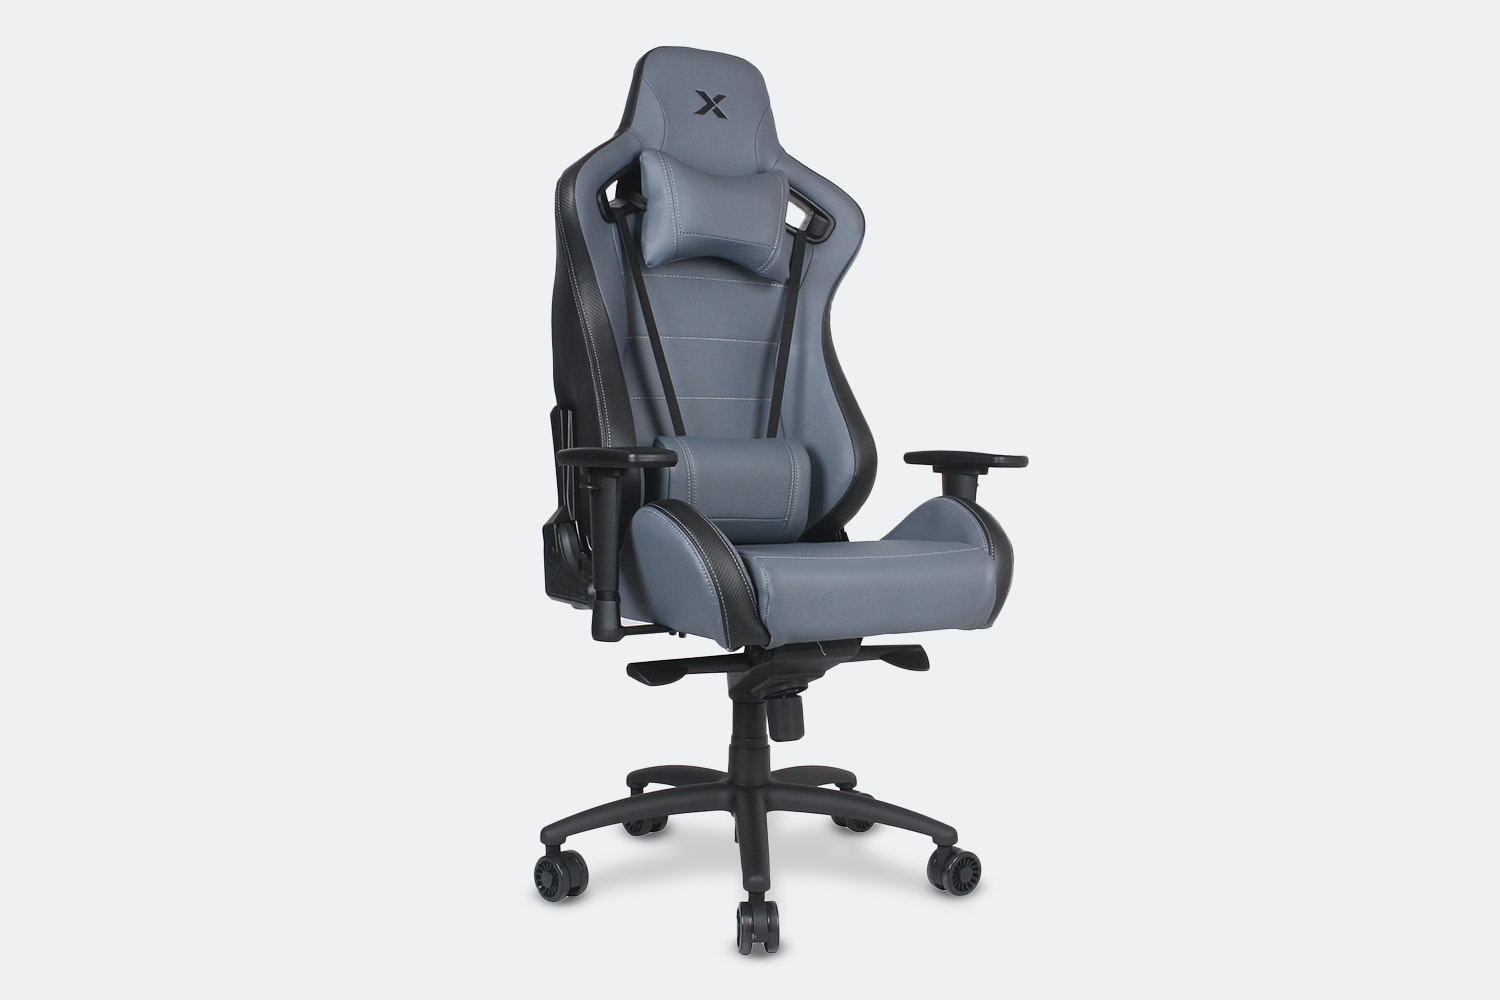 RapidX Carbon Line Gaming Chairs